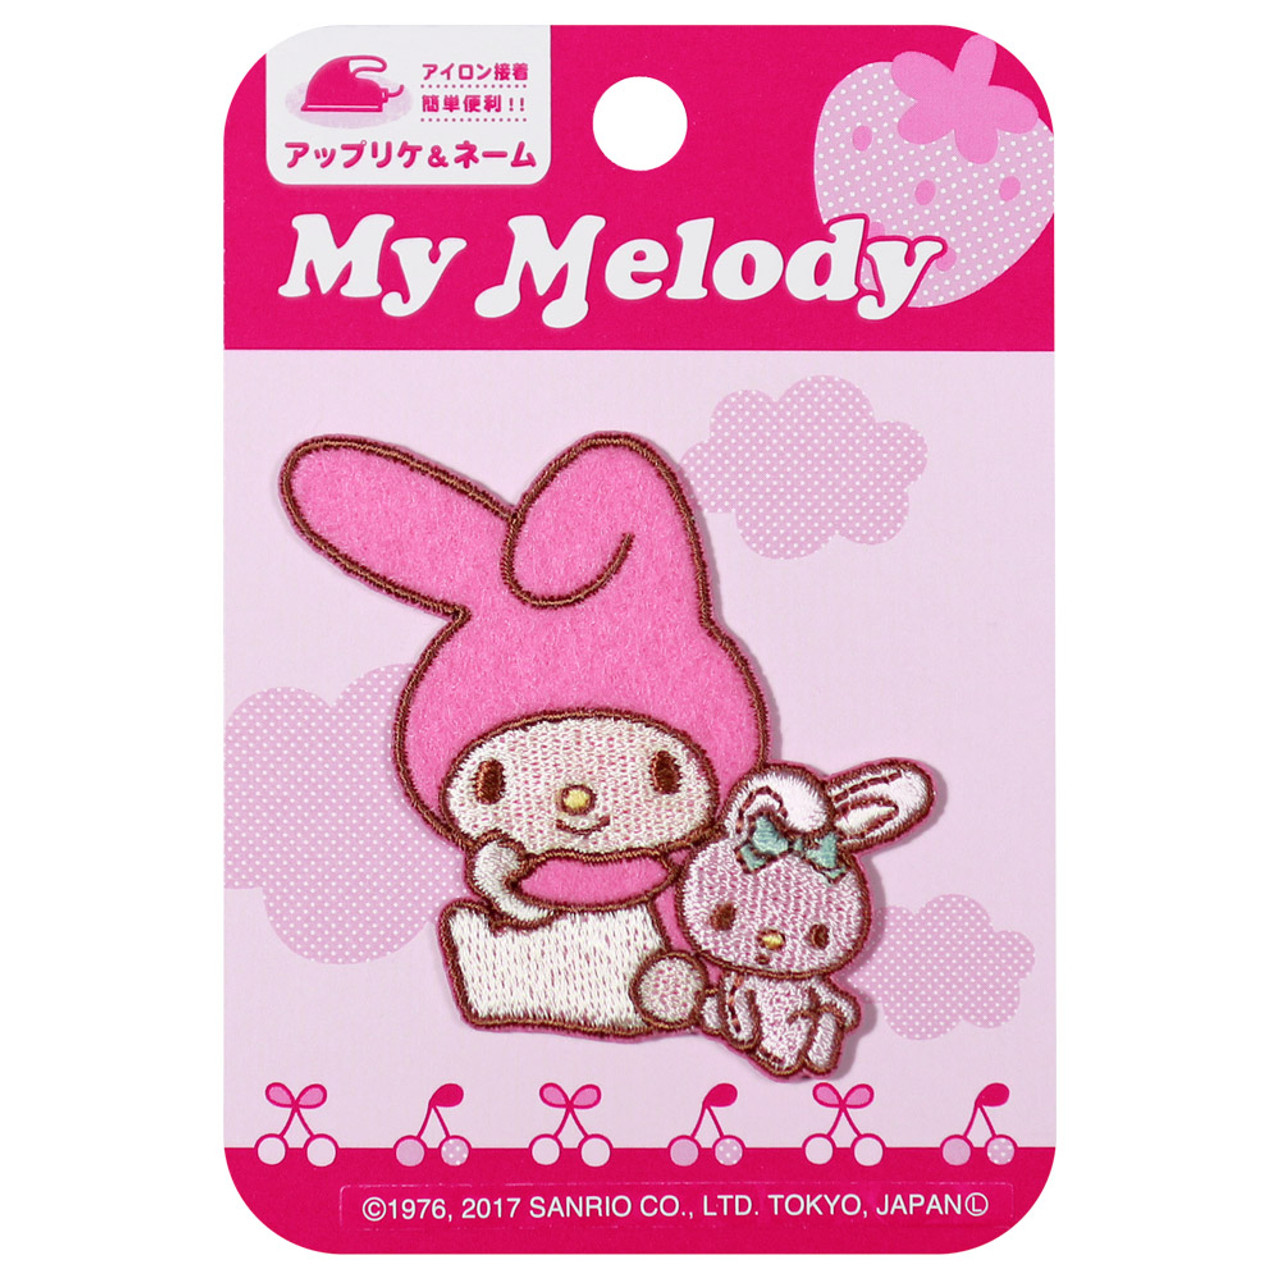 Sanrio My Melody Iron On Patch - Rely On Rabbit BC14 ( Packing View )